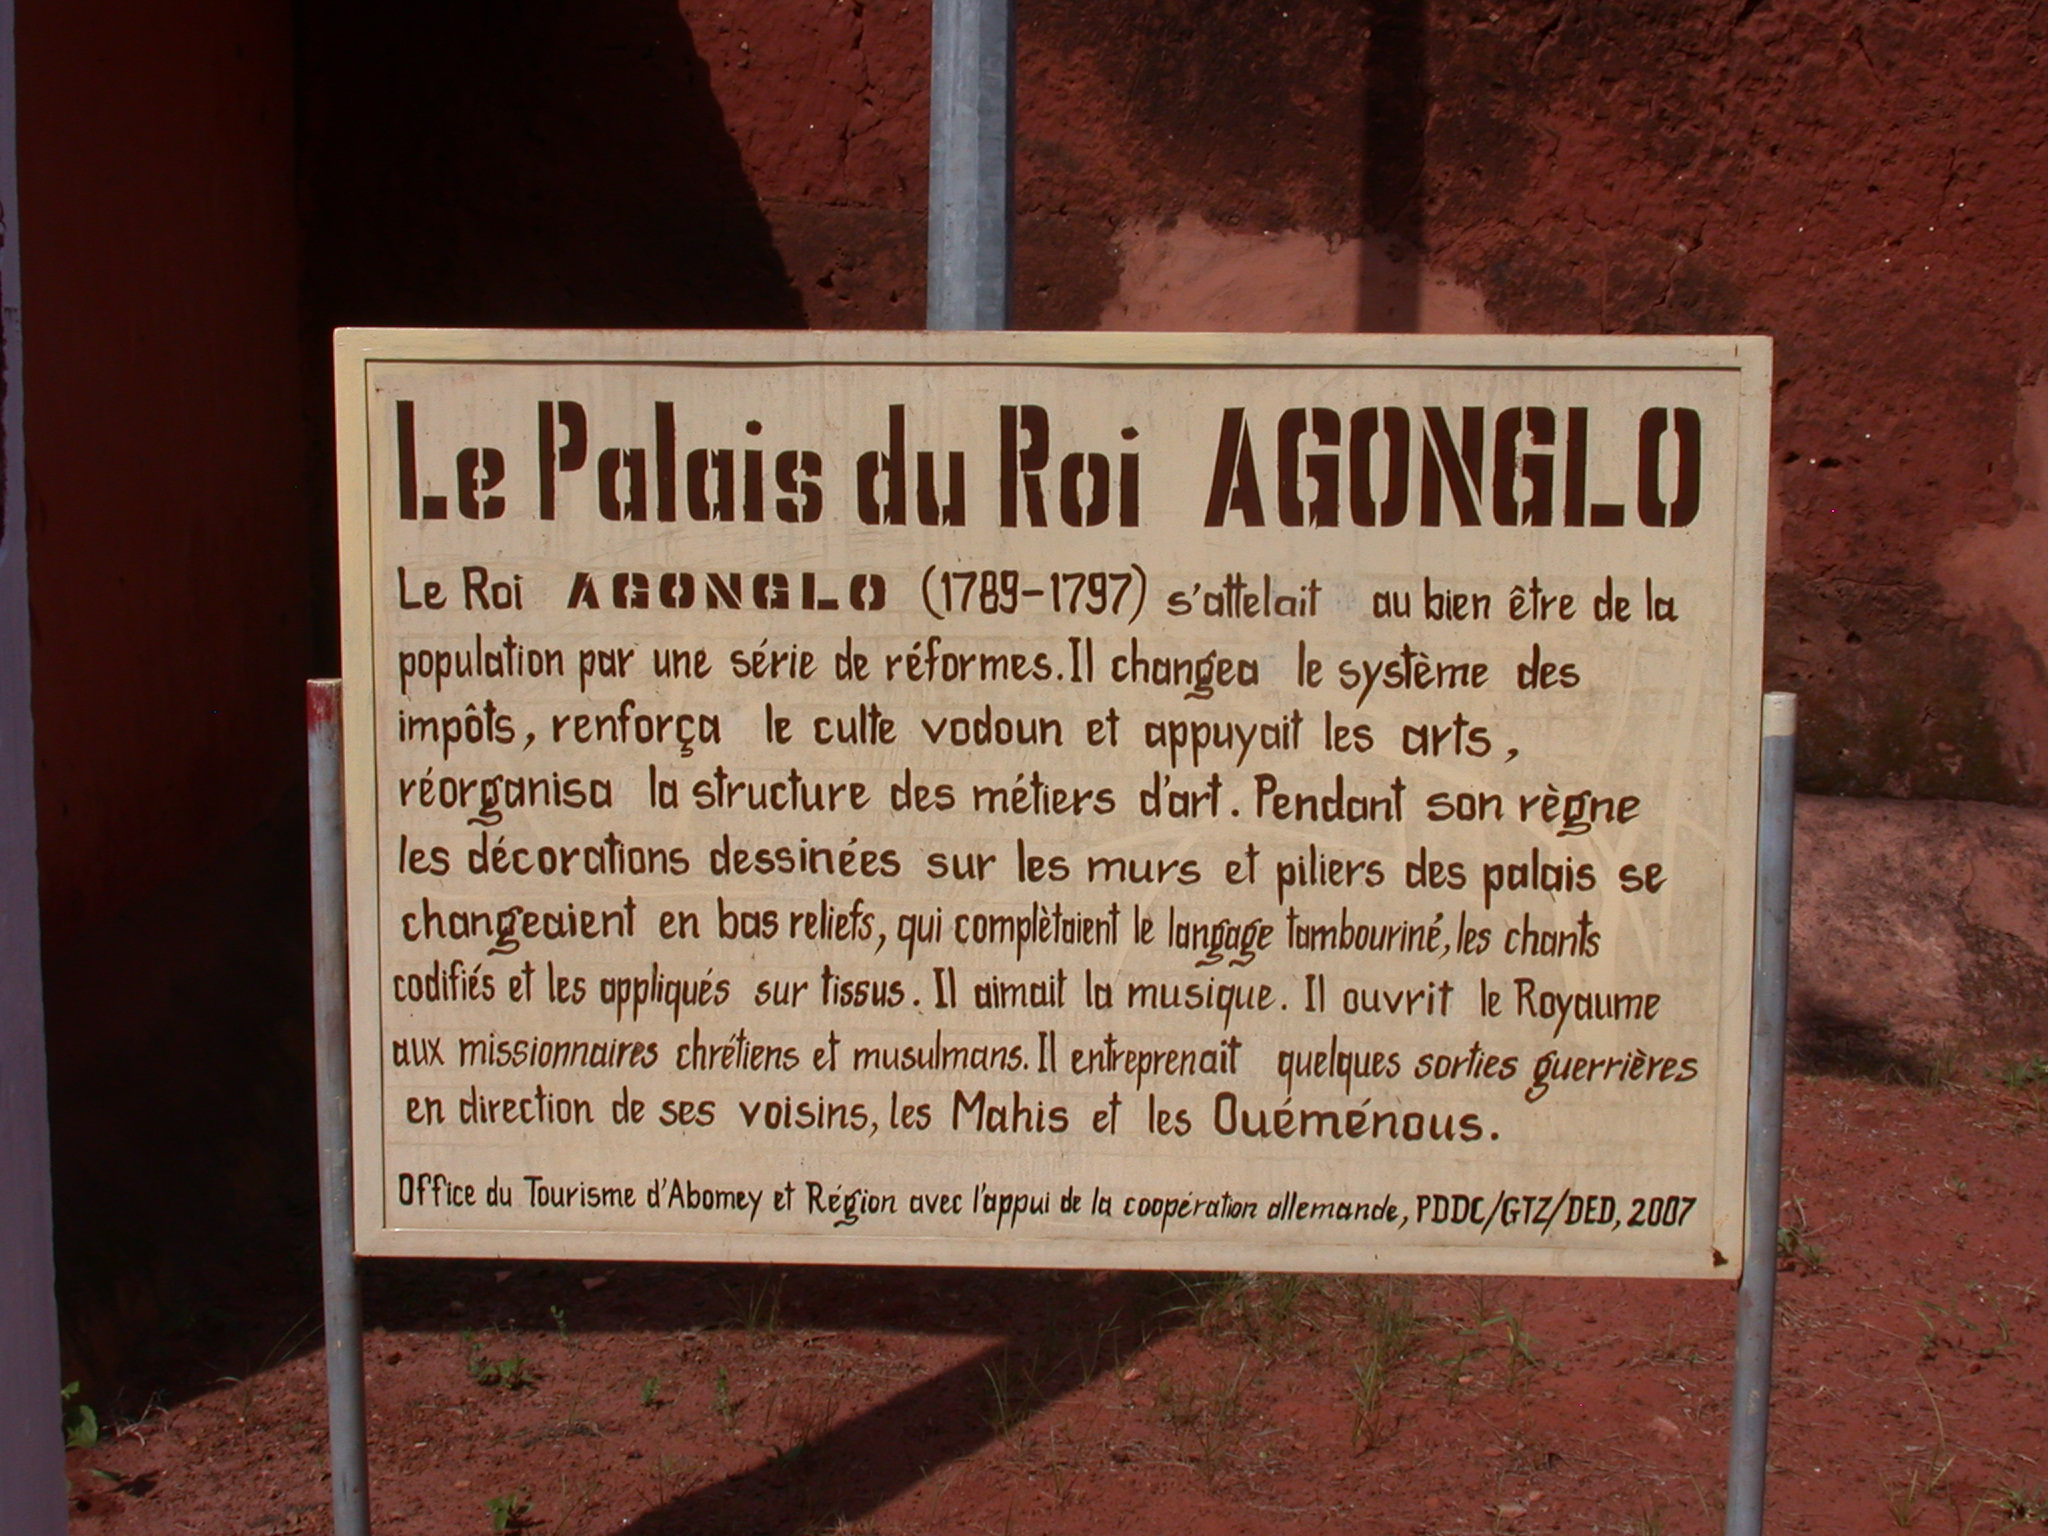 Sign for Palace of King Agonglo, Abomey, Benin